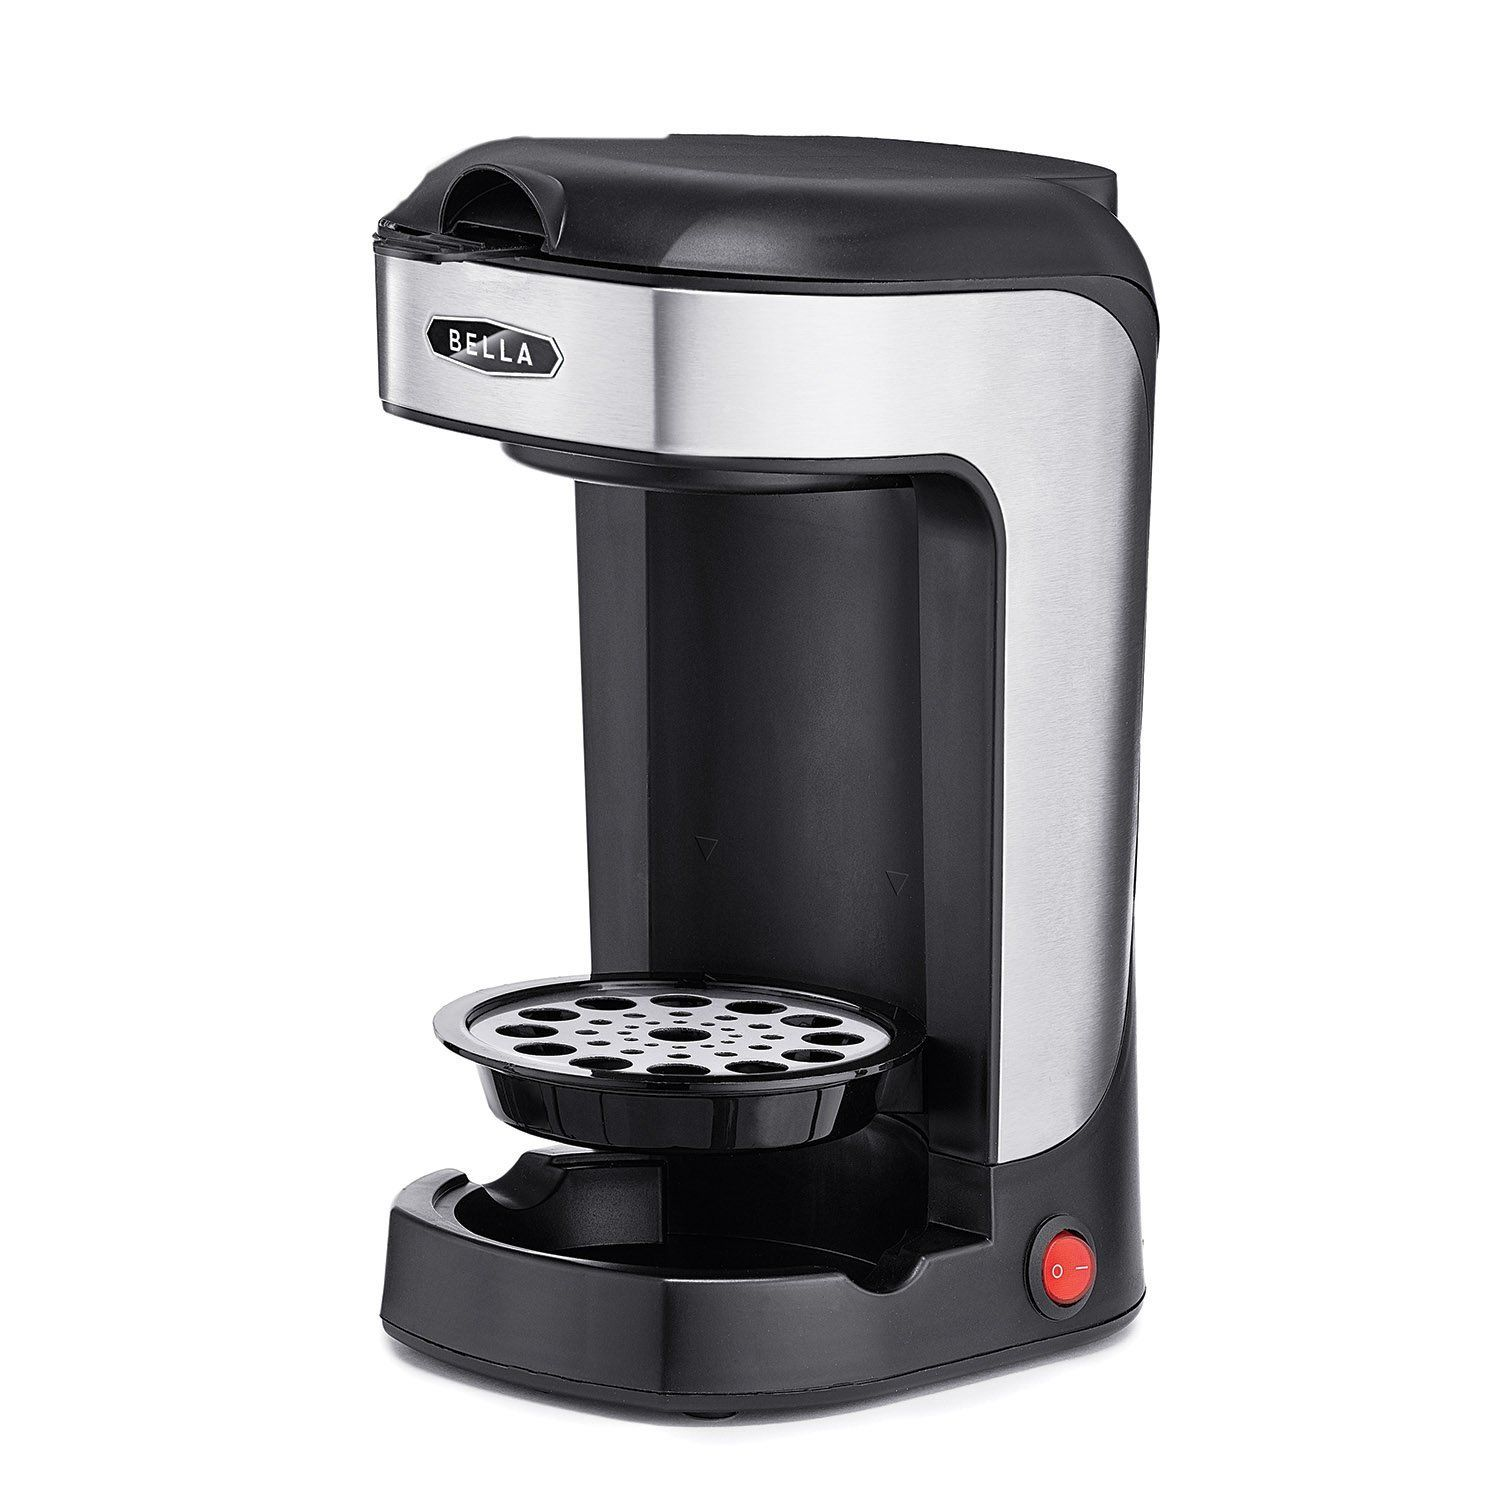 Blackdecker cup programmable coffeemaker black with stainless